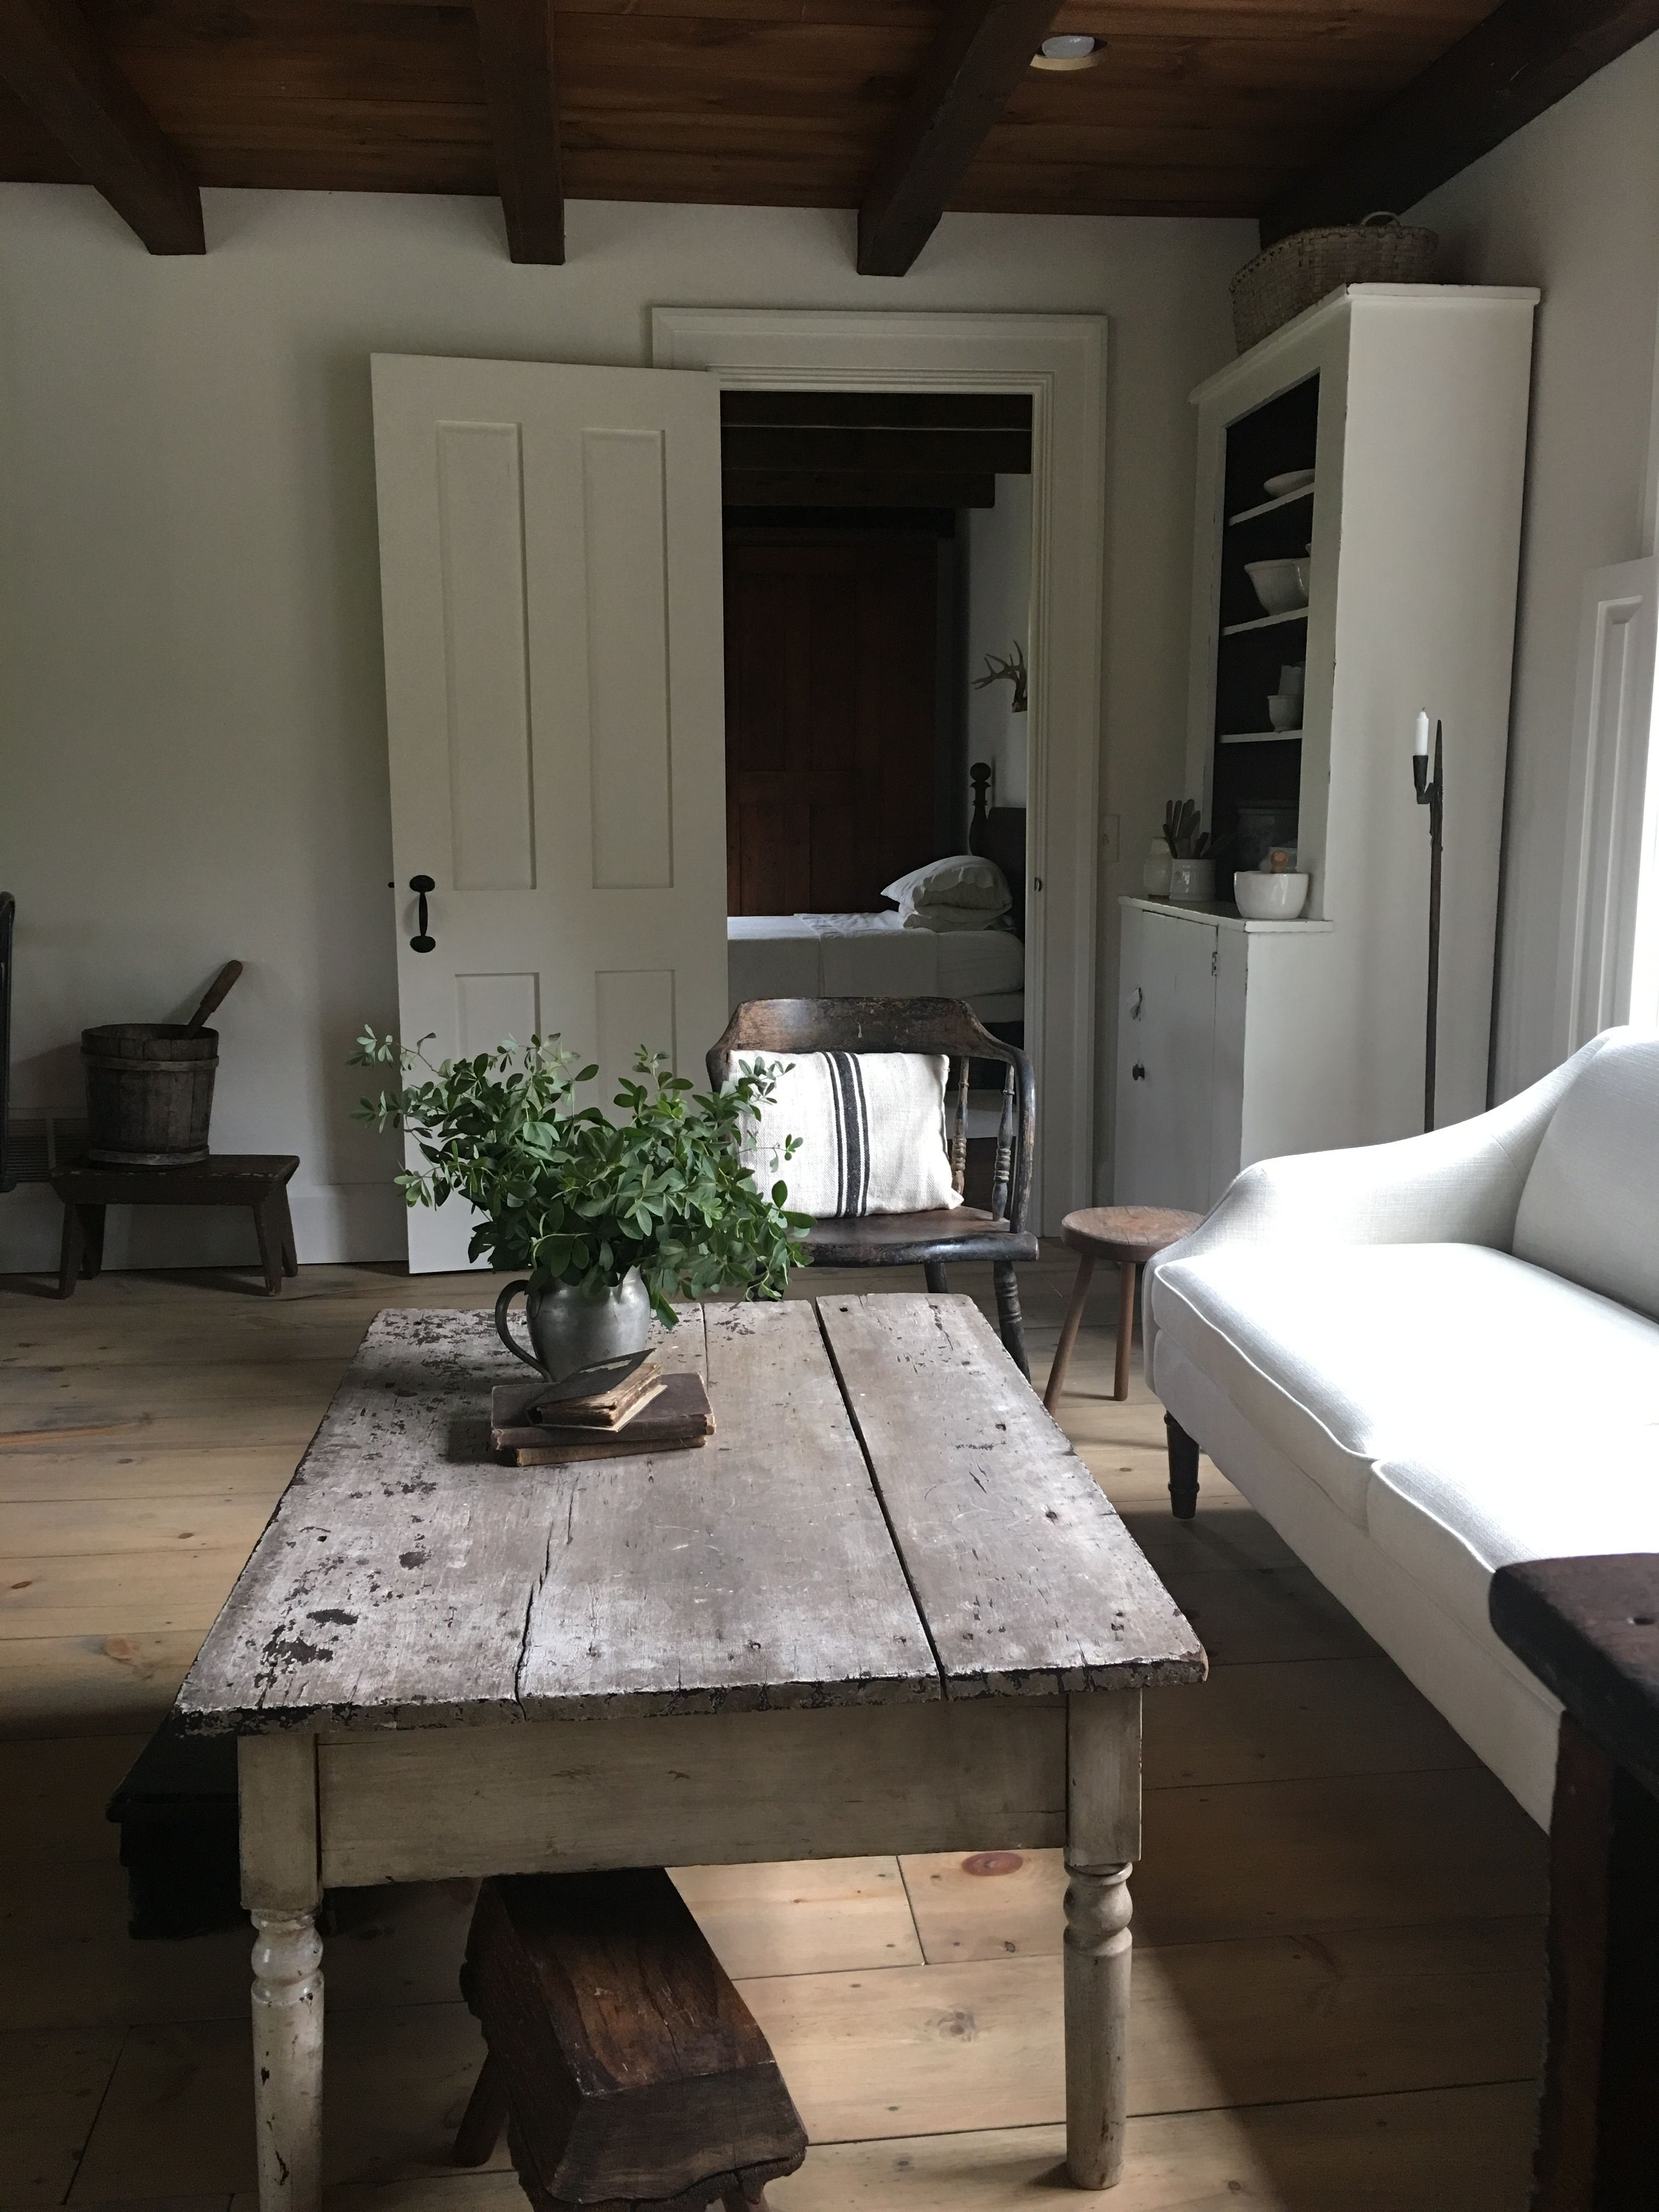 Rustic Coffee Table French Country Living Room Farm House Living Room Home #rustic #french #country #living #room